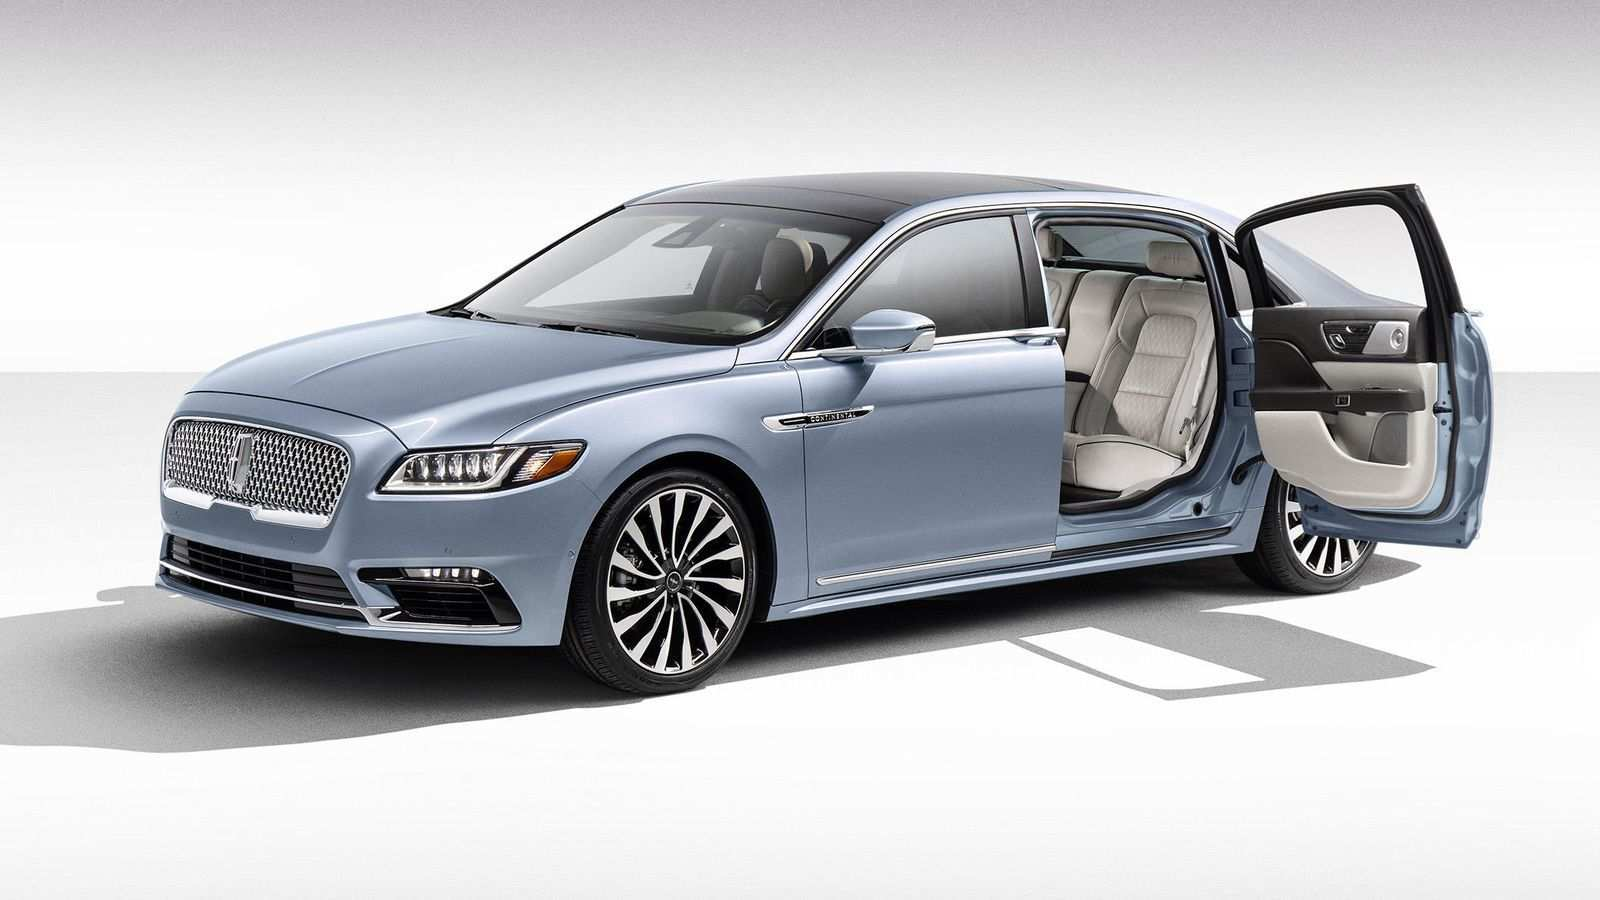 89 A 2019 The Lincoln Continental Spy Shoot